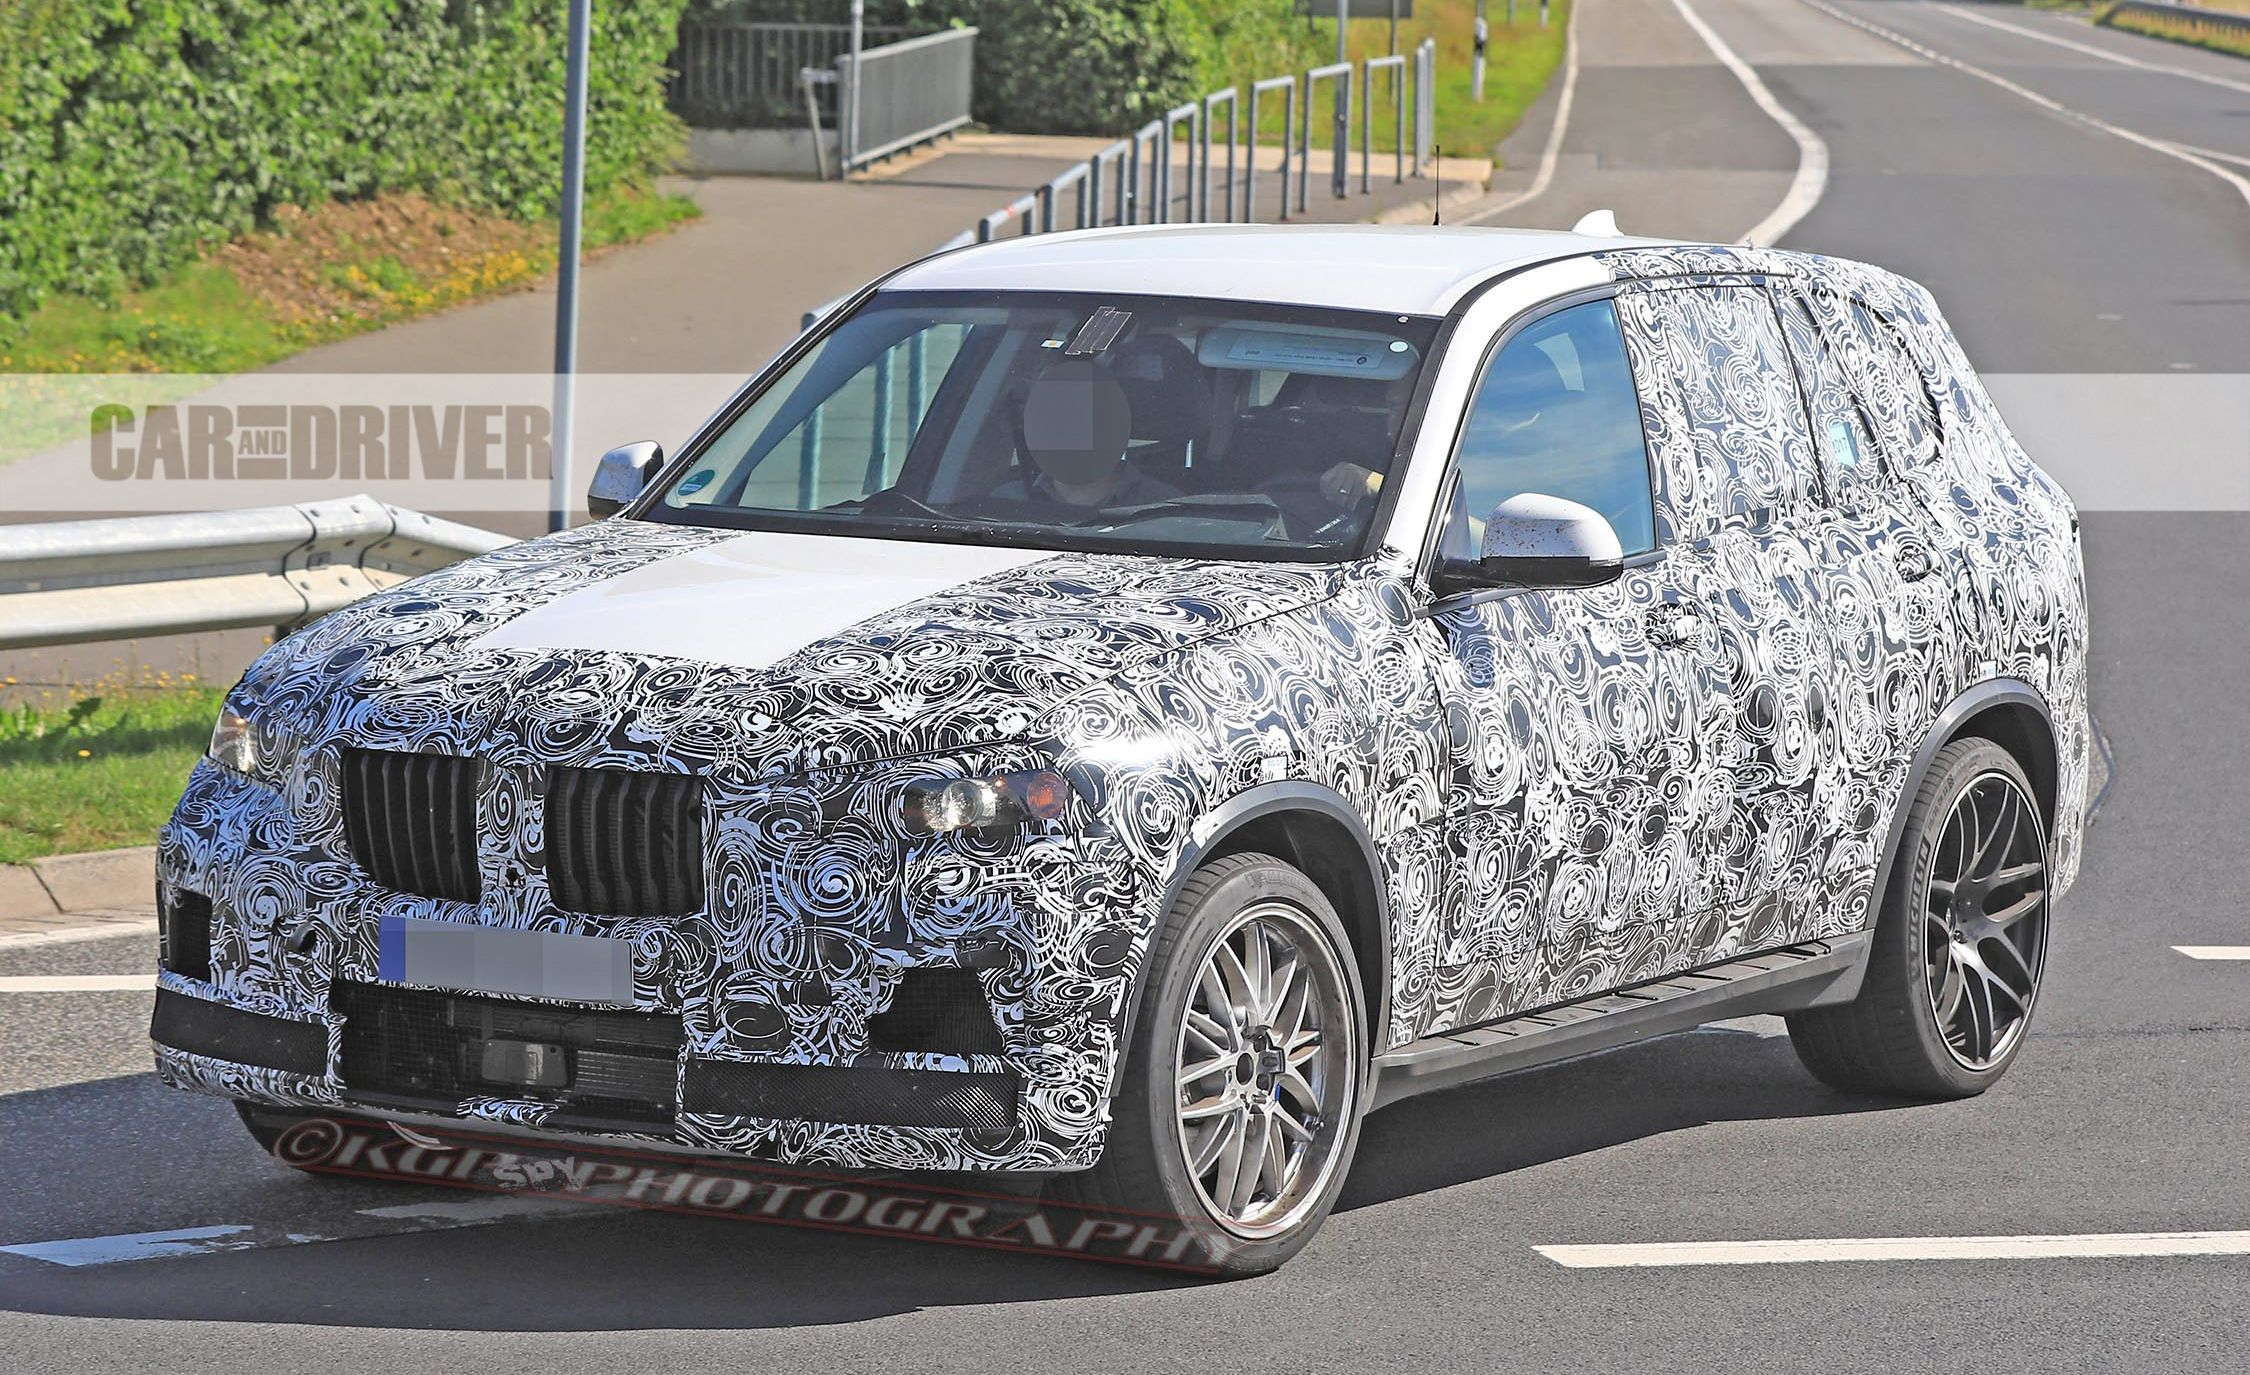 2019 Bmw X5 M Spy Photo Pictures Photo Gallery Car And Driver